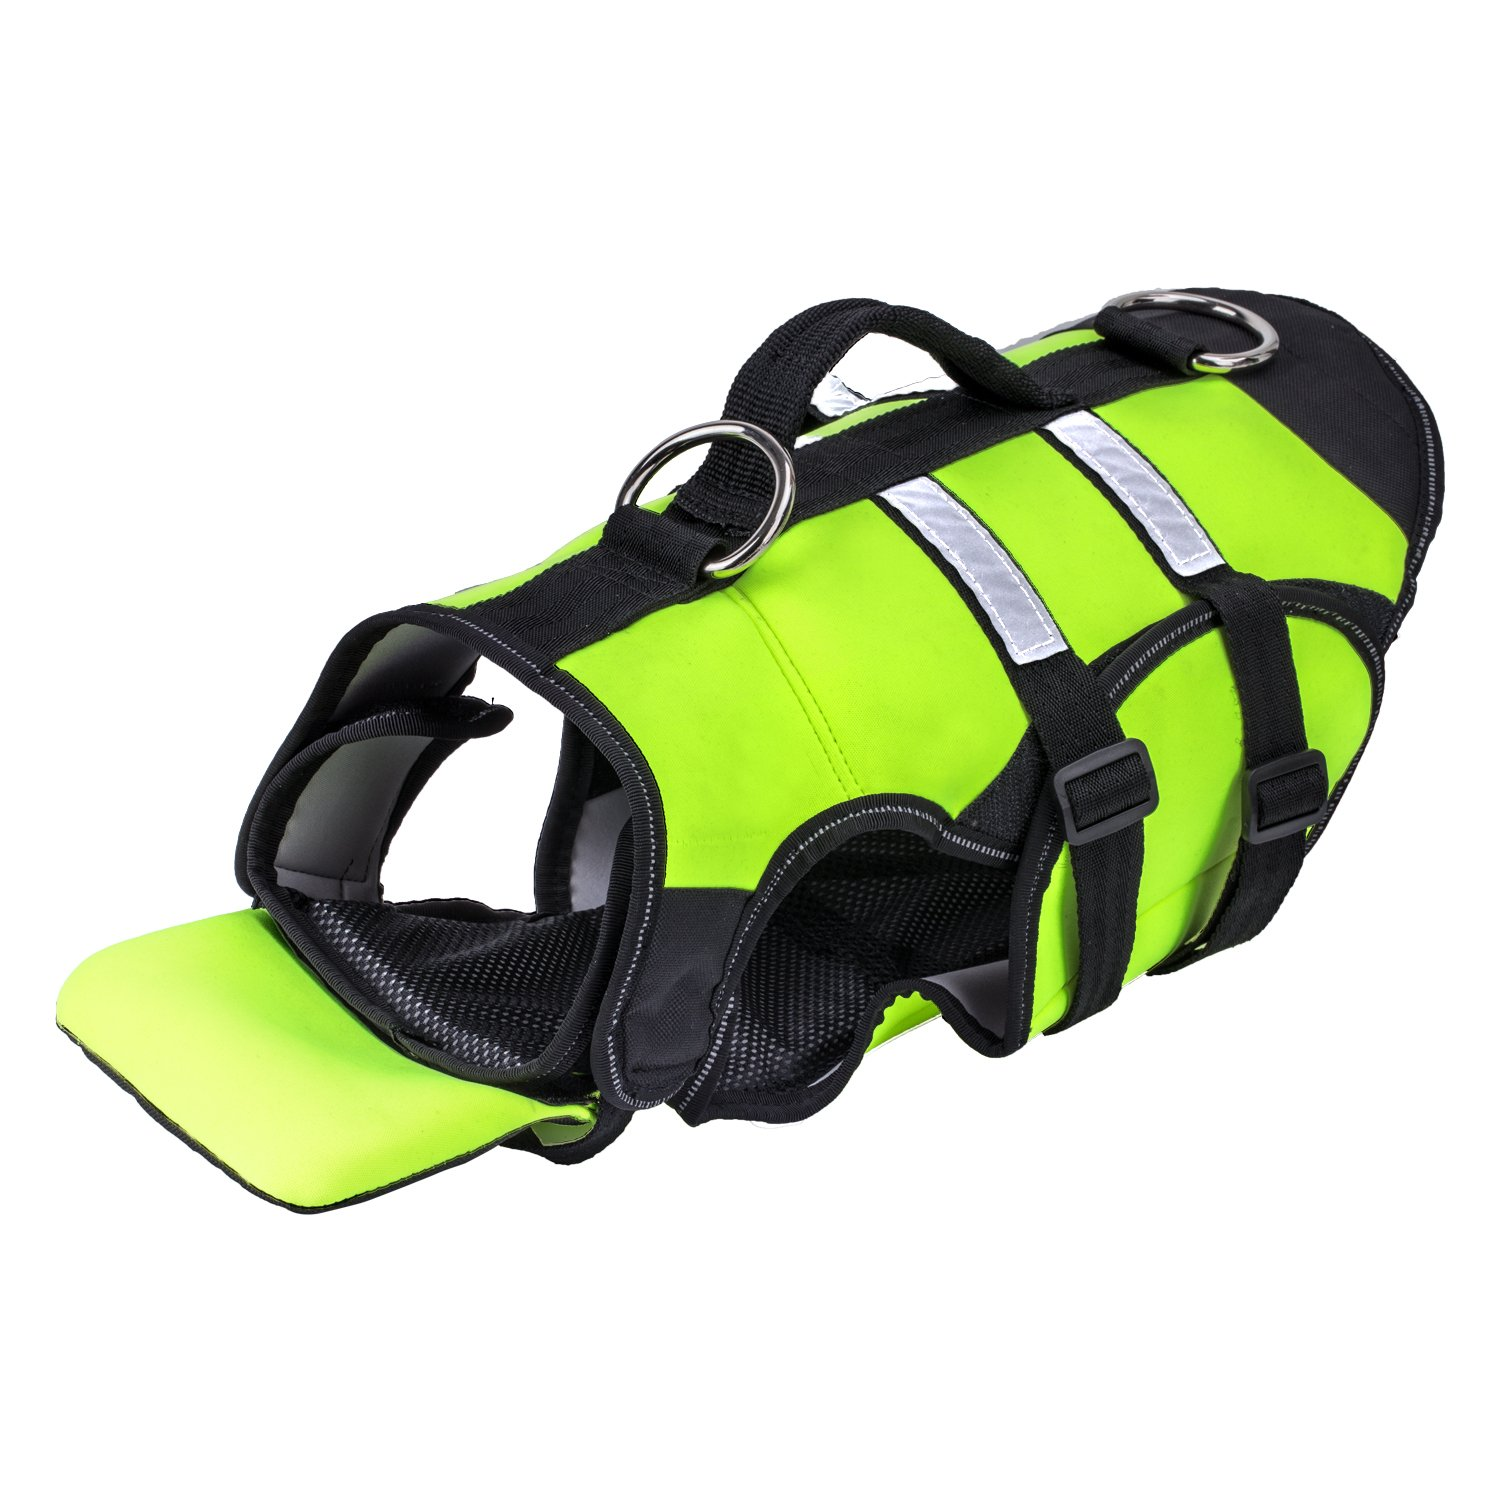 Pawaboo Dog Life Jacket Duarable Adjustable Soft Padded Reflective Neoprene